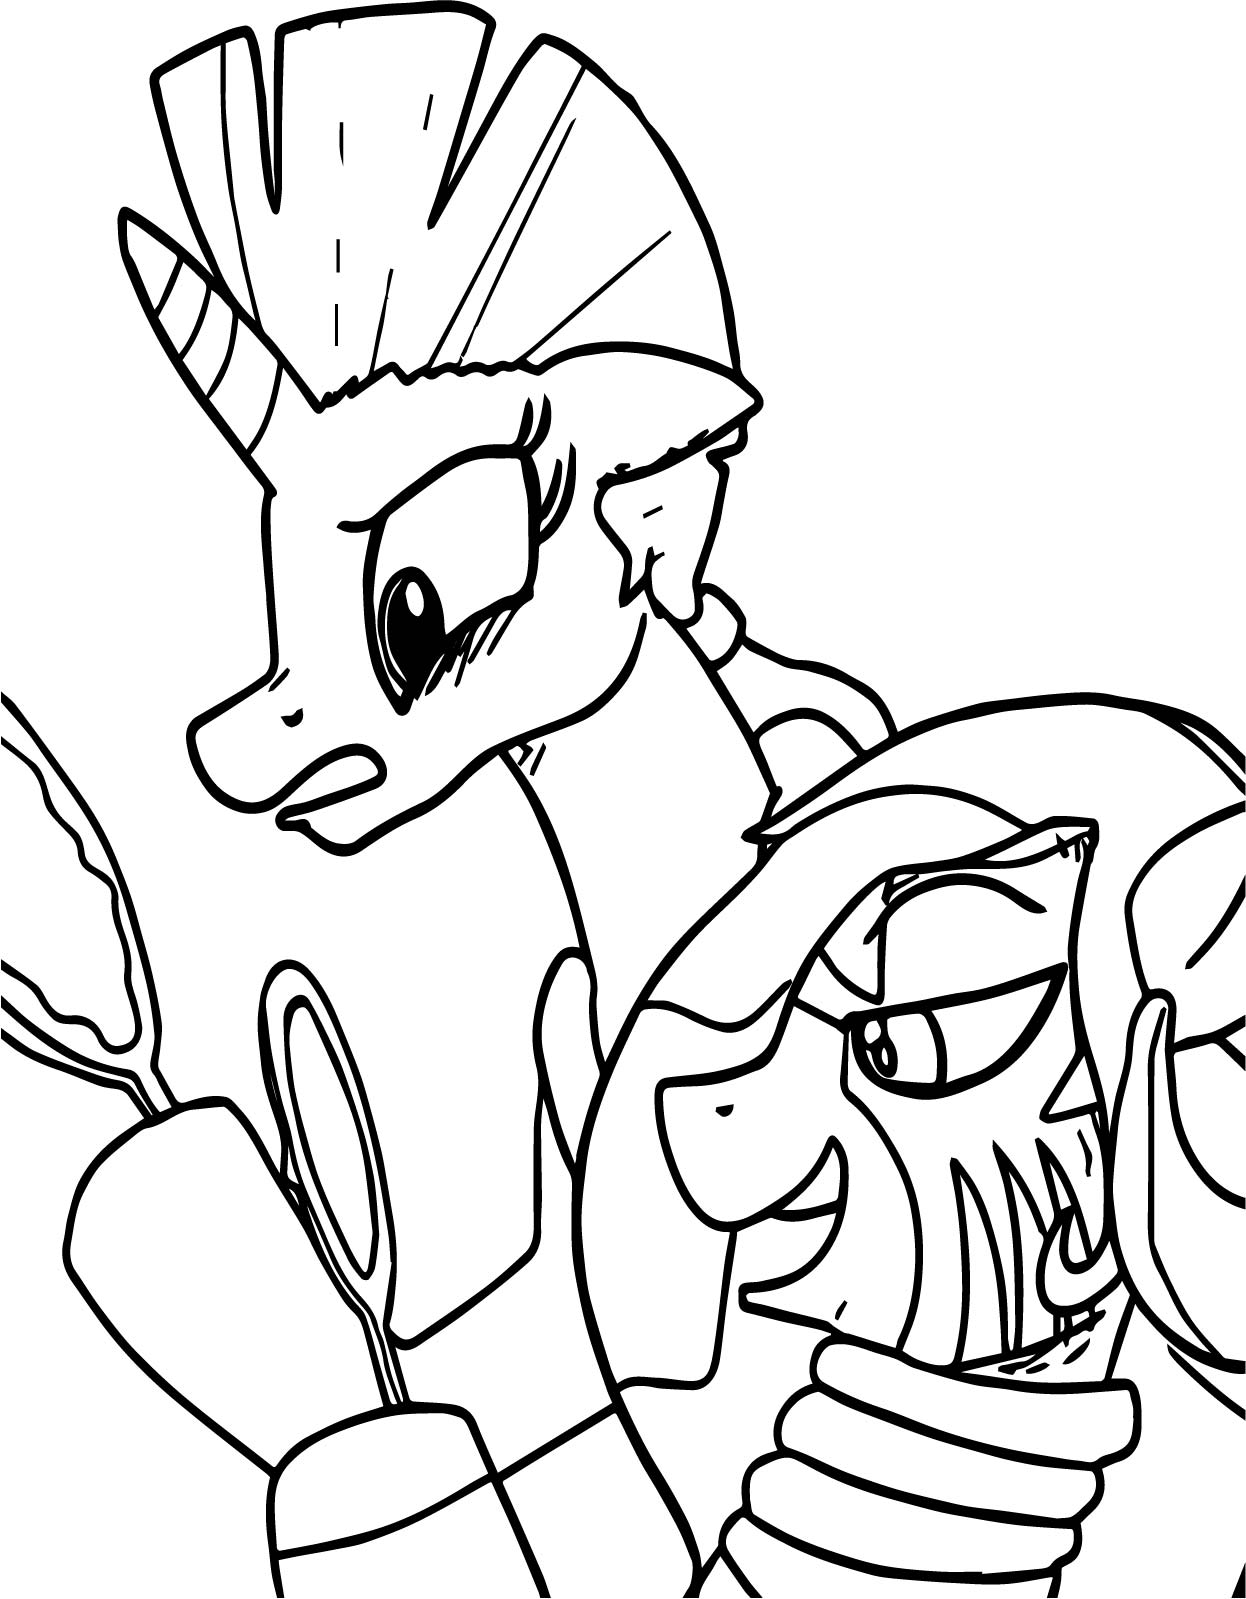 Hand Mirror Coloring Page Zecora Looking